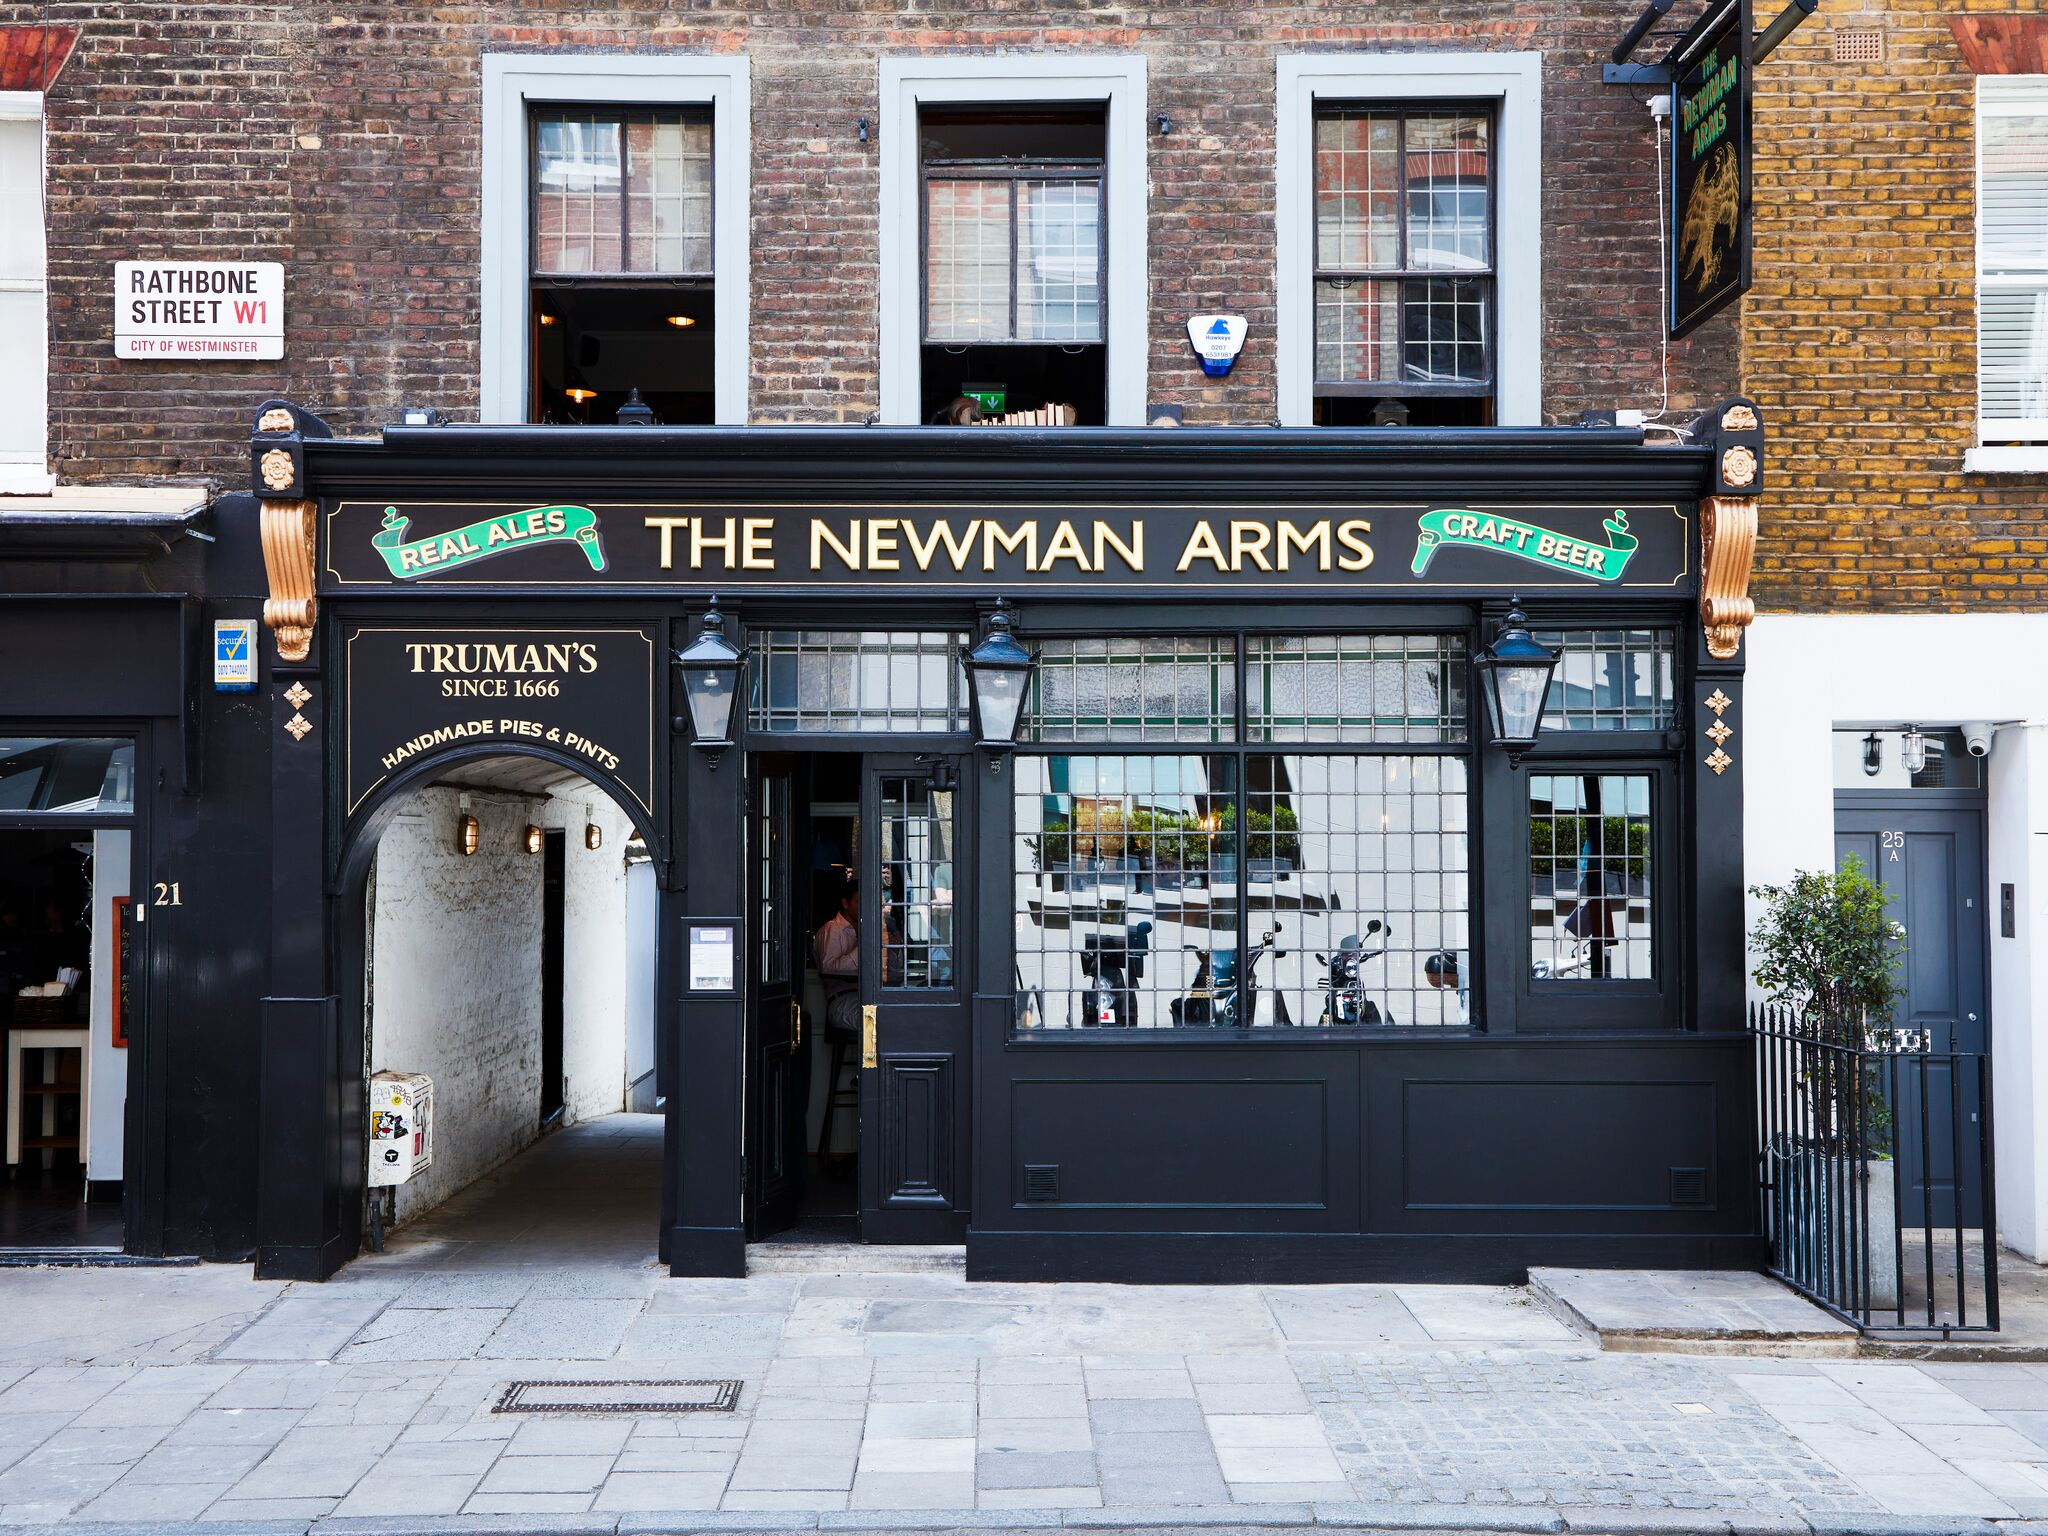 The Newman Arms